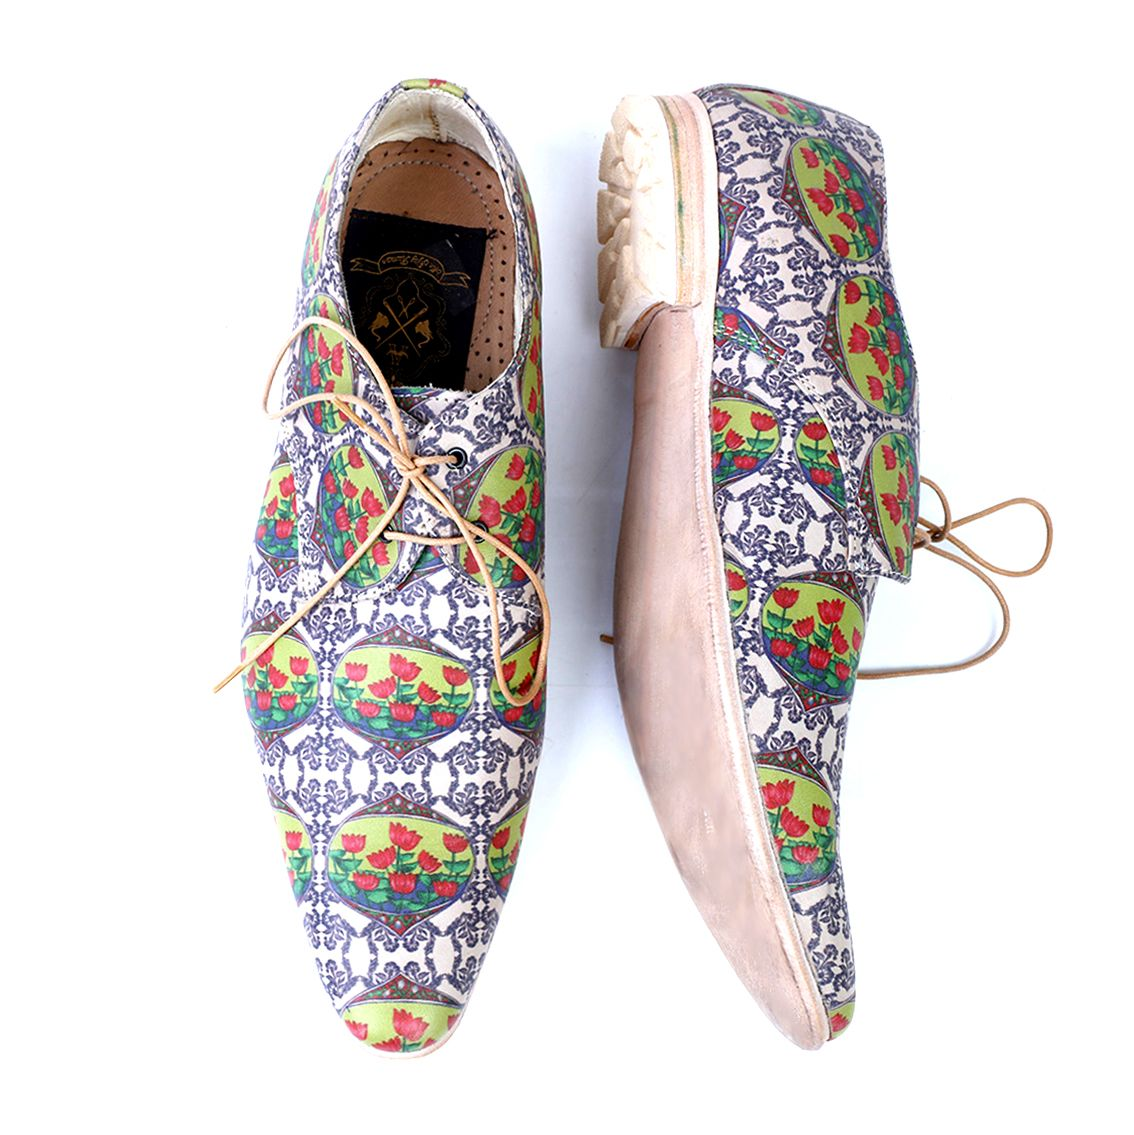 Qutub Handmade Leather Printed Shoes